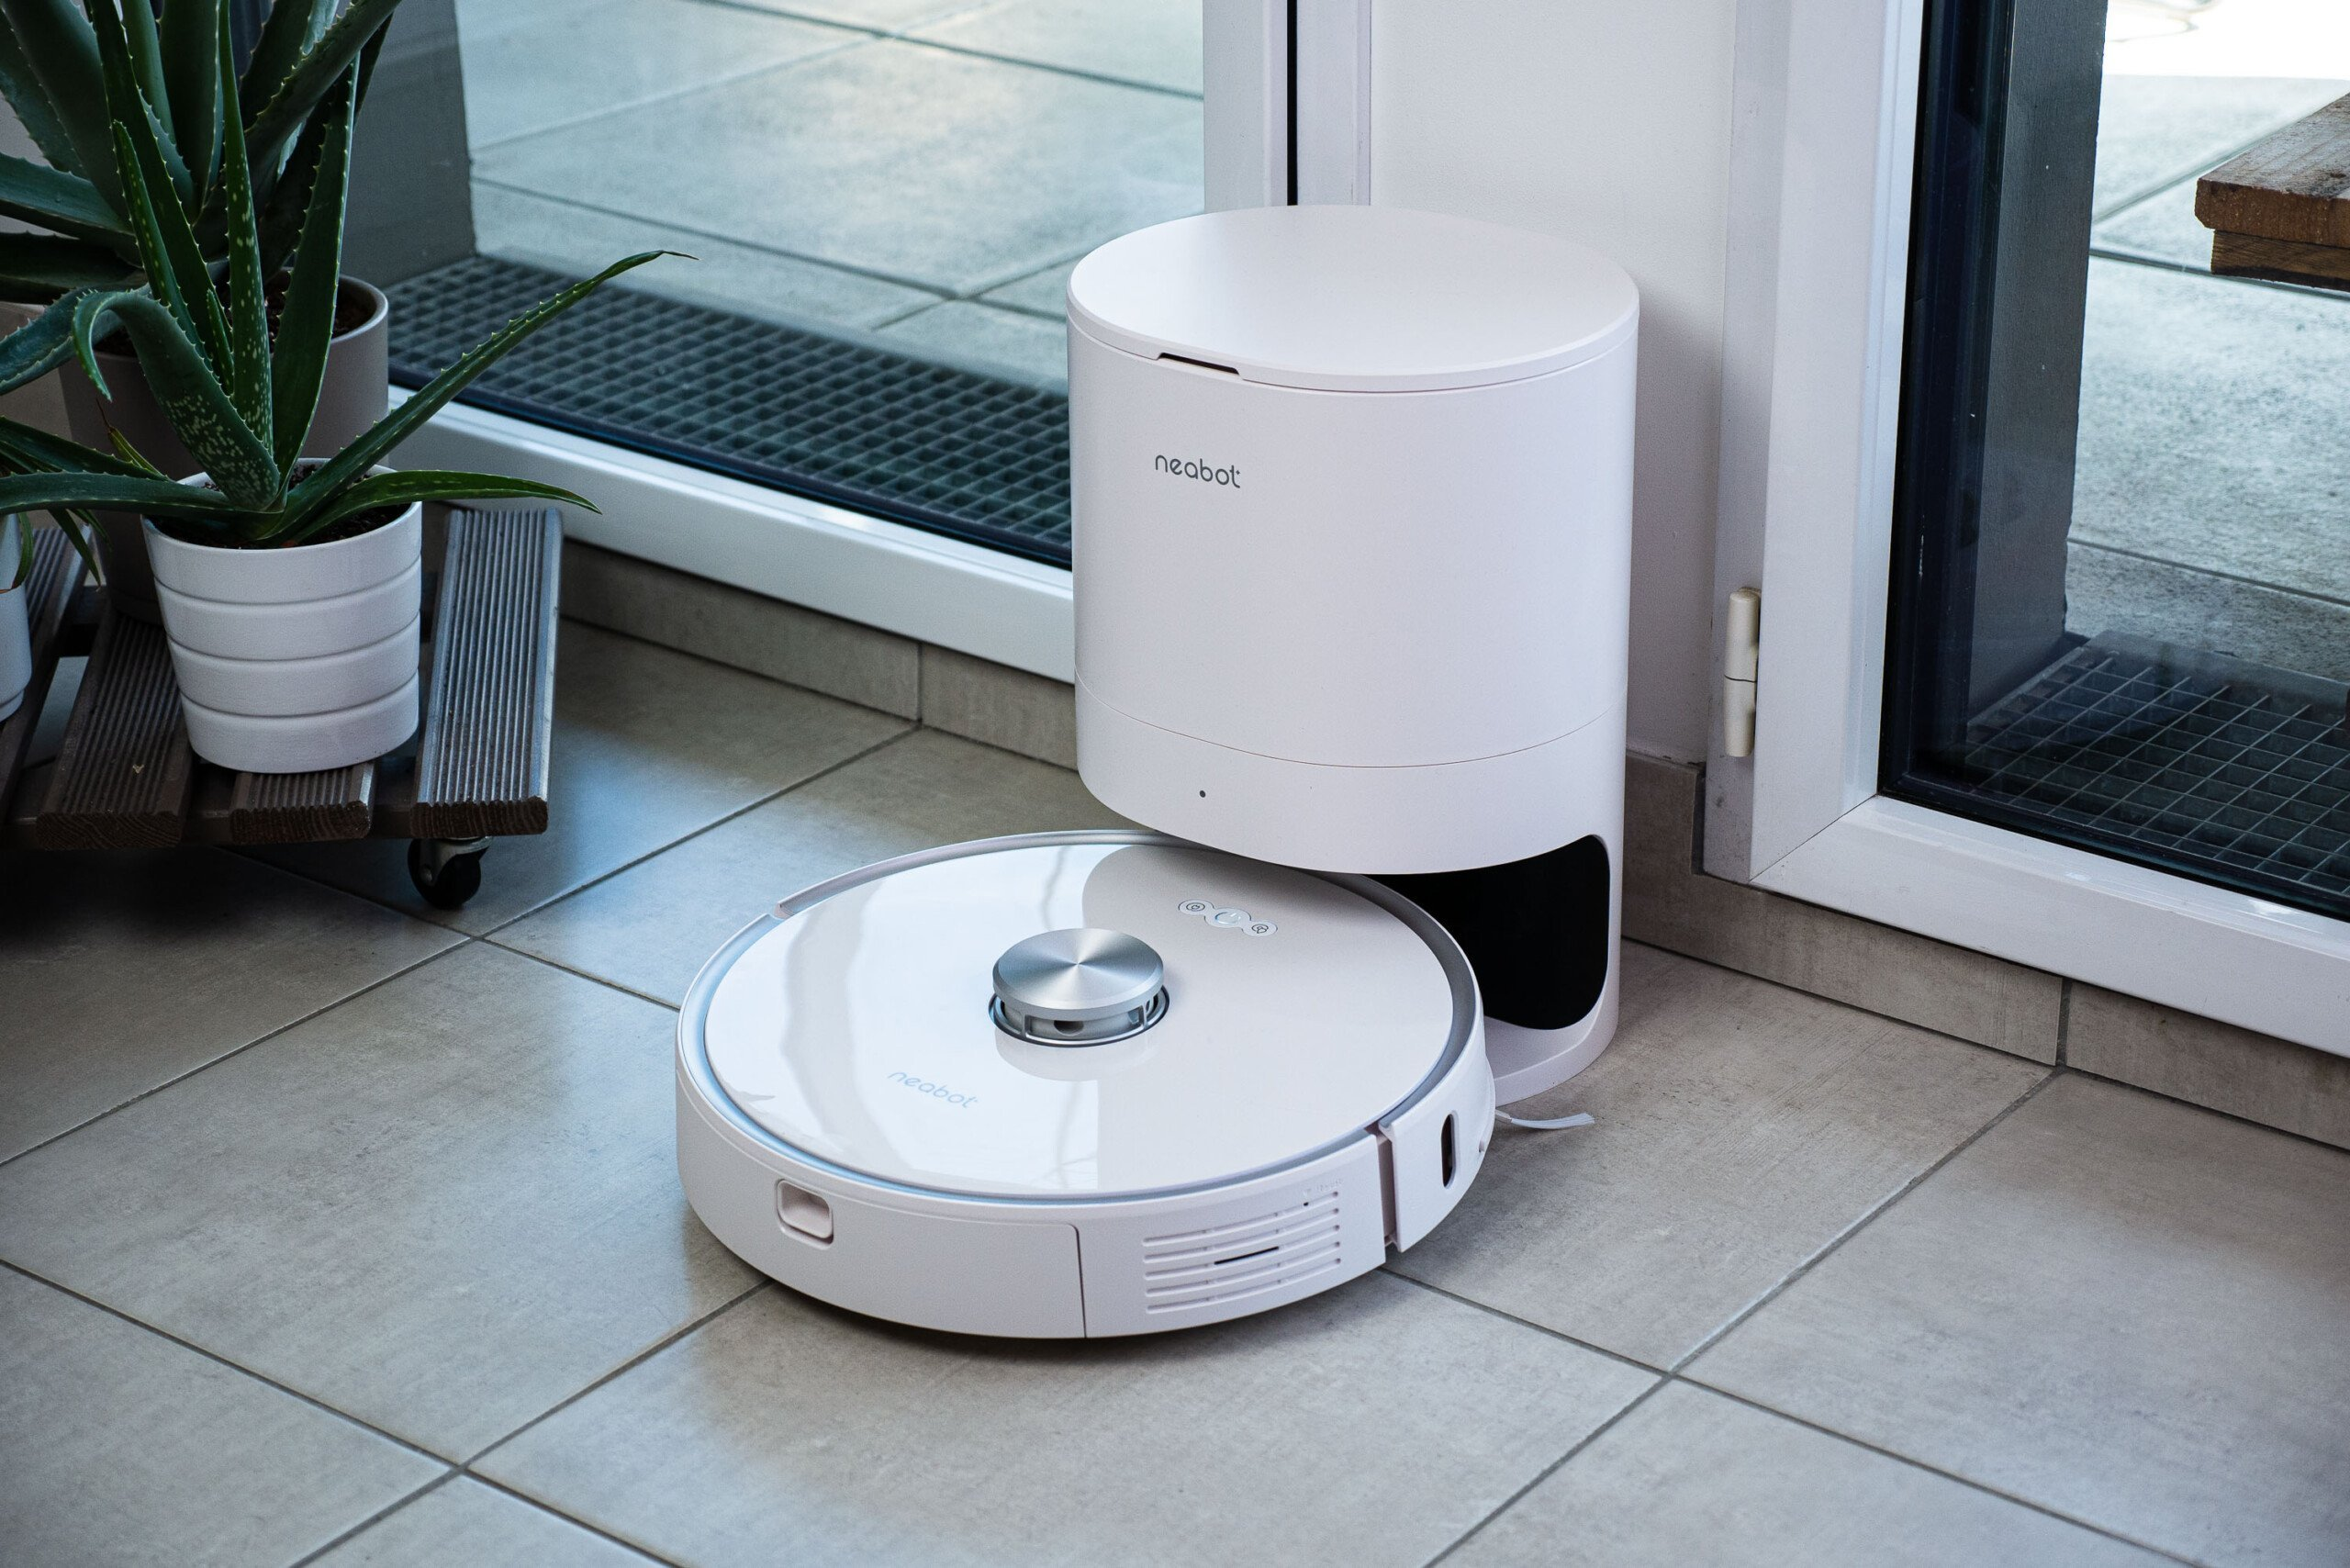 Test du robot aspirateur Neabot NoMo : simple et efficace